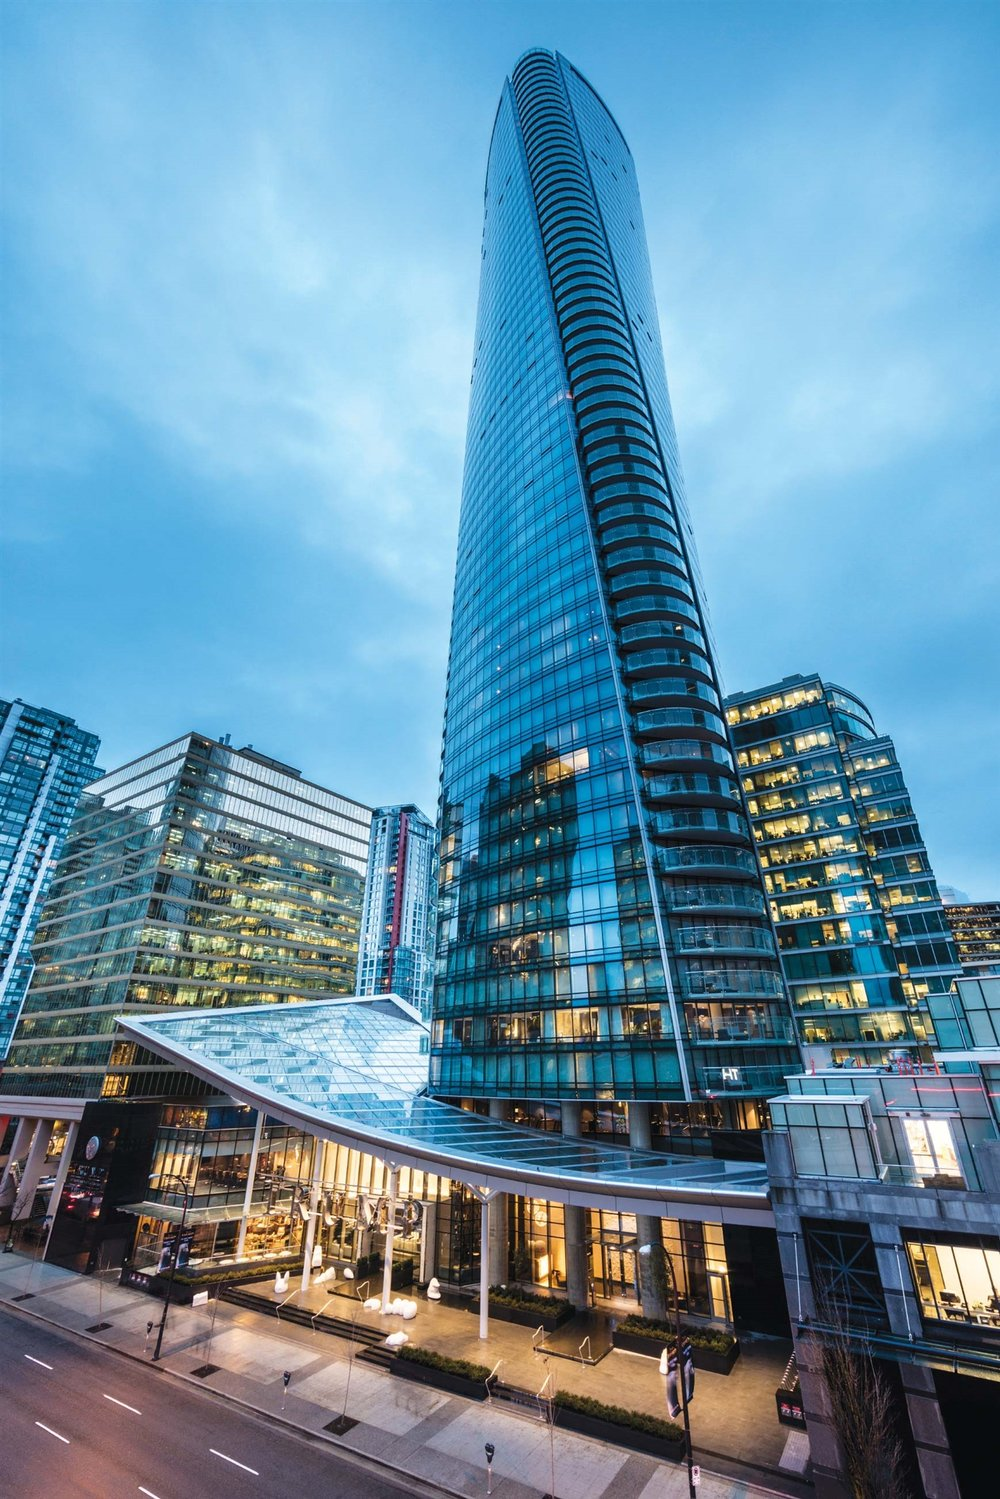 The Trump International Hotel & Tower's distinctive twisting architecture is an icon in the downtown Vancouver landscape.